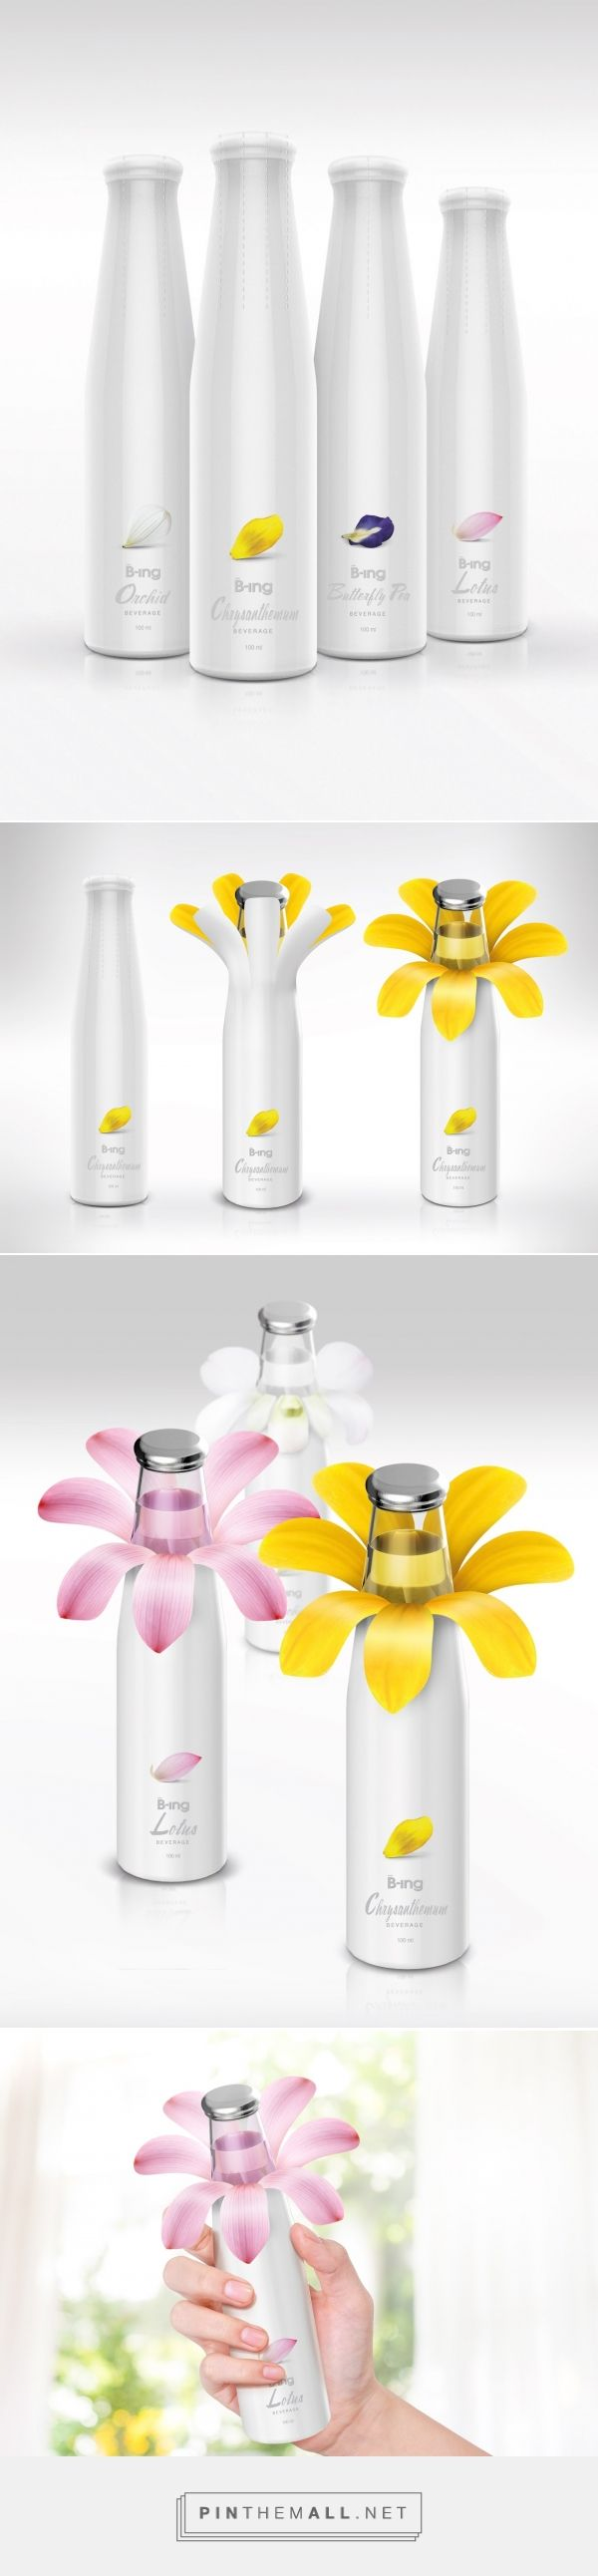 B-ing Flower Drink packaging design concept by Prompt Design - http://www.packagingoftheworld.com/2017/07/b-ing-flower-drink-concept.html - created via https://pinthemall.net